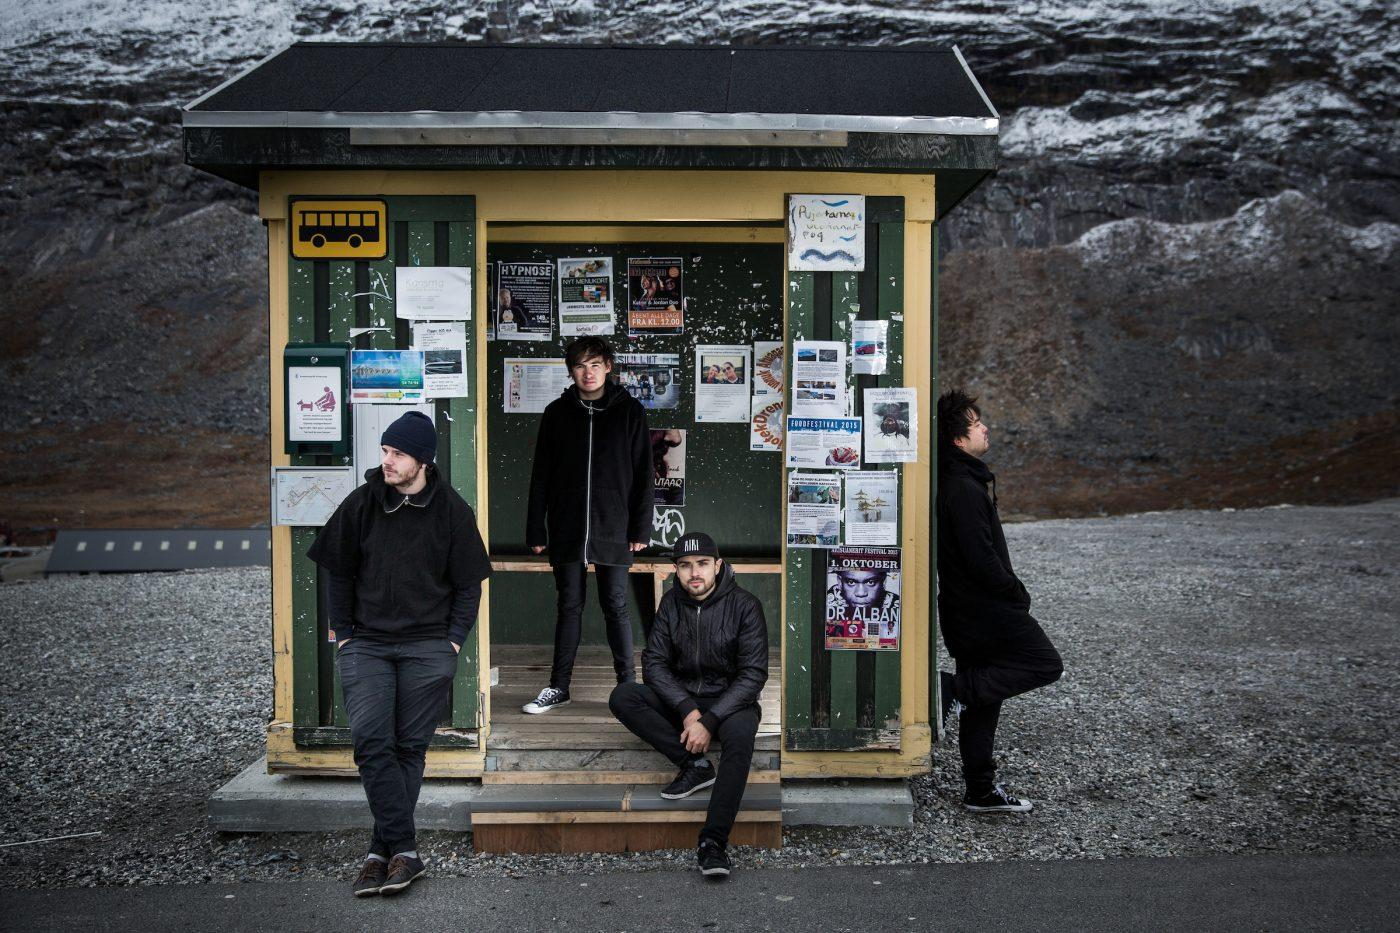 Small Time Giants waiting for the bus in Qinngorput in Nuuk. Photo by Mads Pihl